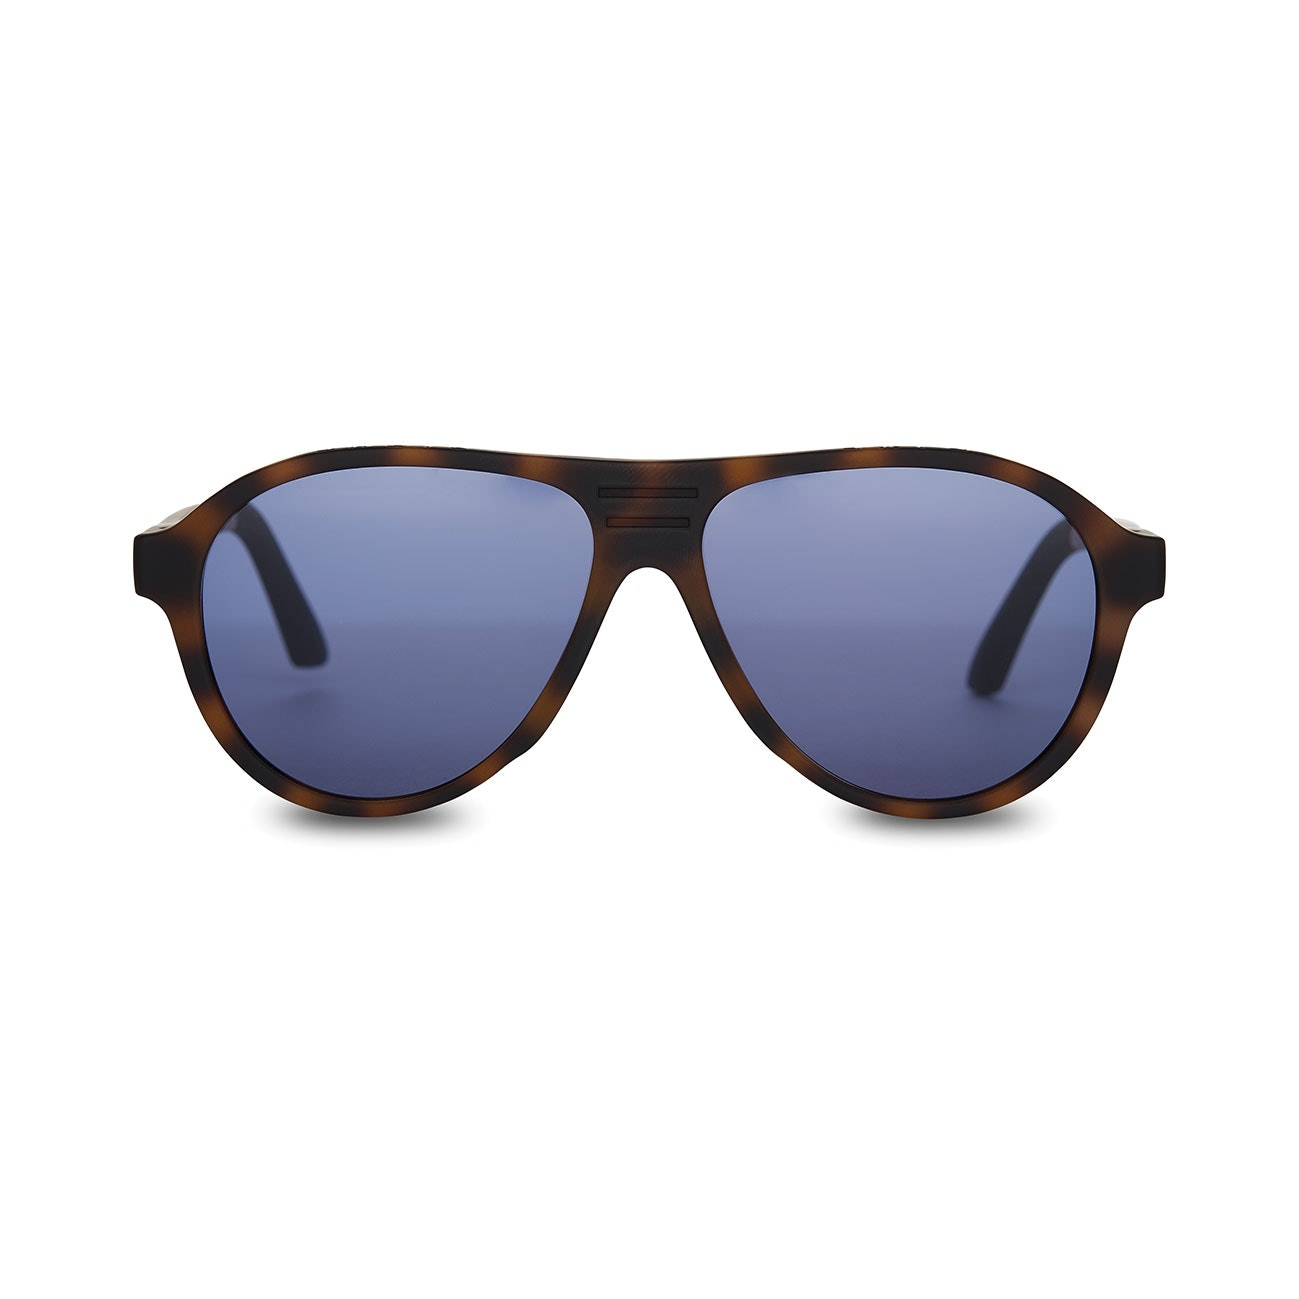 cc1b624d1e Details about Kathmandu Traveler by TOMS 100% UVA and UVB protection  Durable Zion Sunglasses